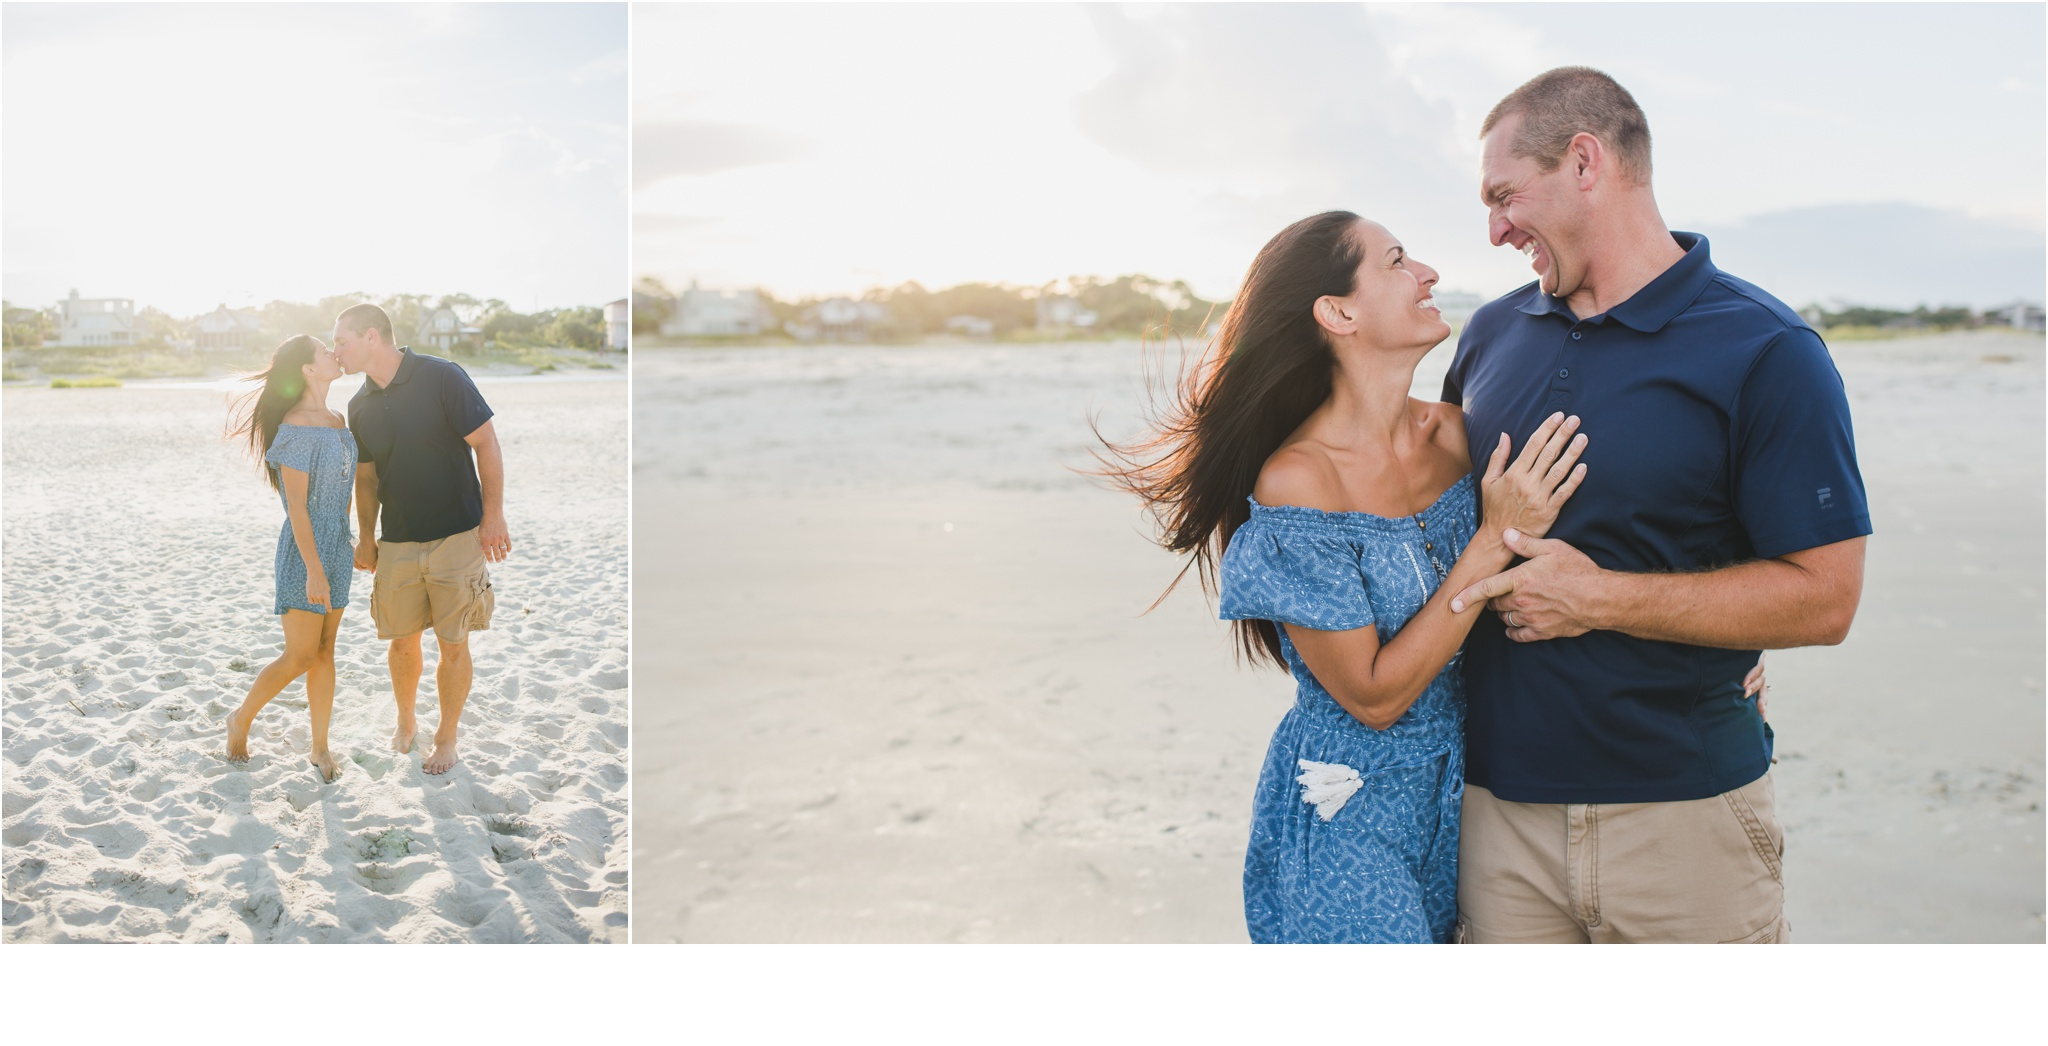 Rainey_Gregg_Photography_St._Simons_Island_Georgia_California_Wedding_Portrait_Photography_1438.jpg